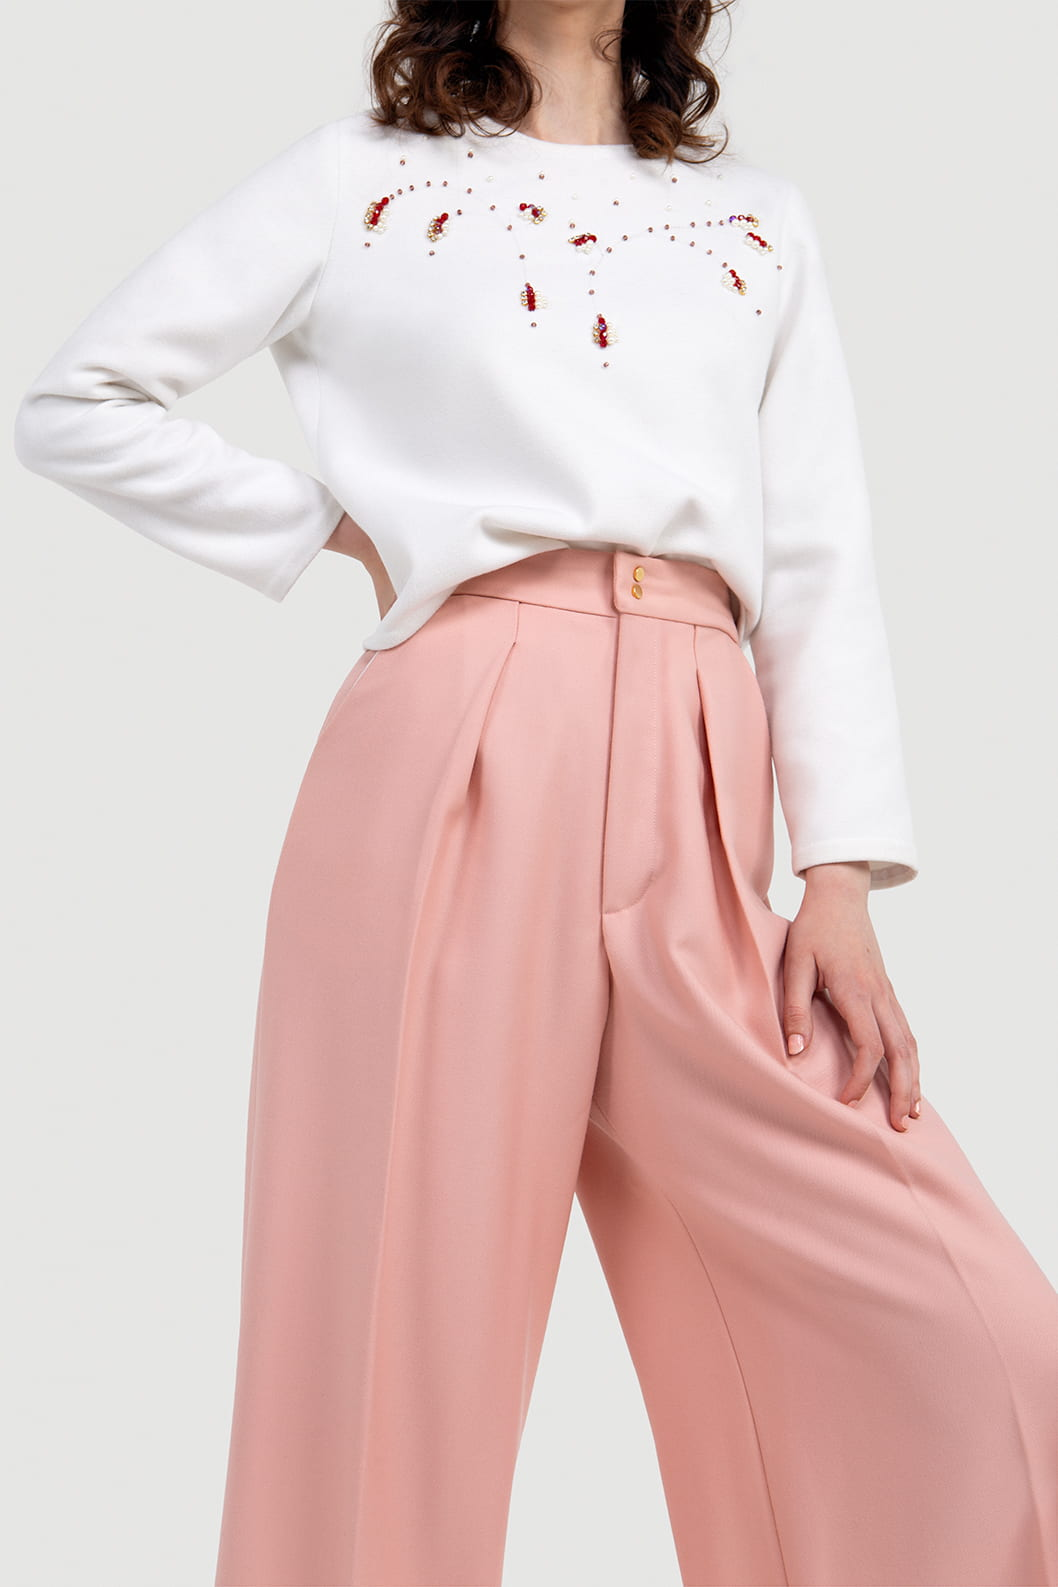 VALDONE Au - Front closeup of the women's tailored suit trousers. Cut from a fine wool fabric in a blush pink colour.